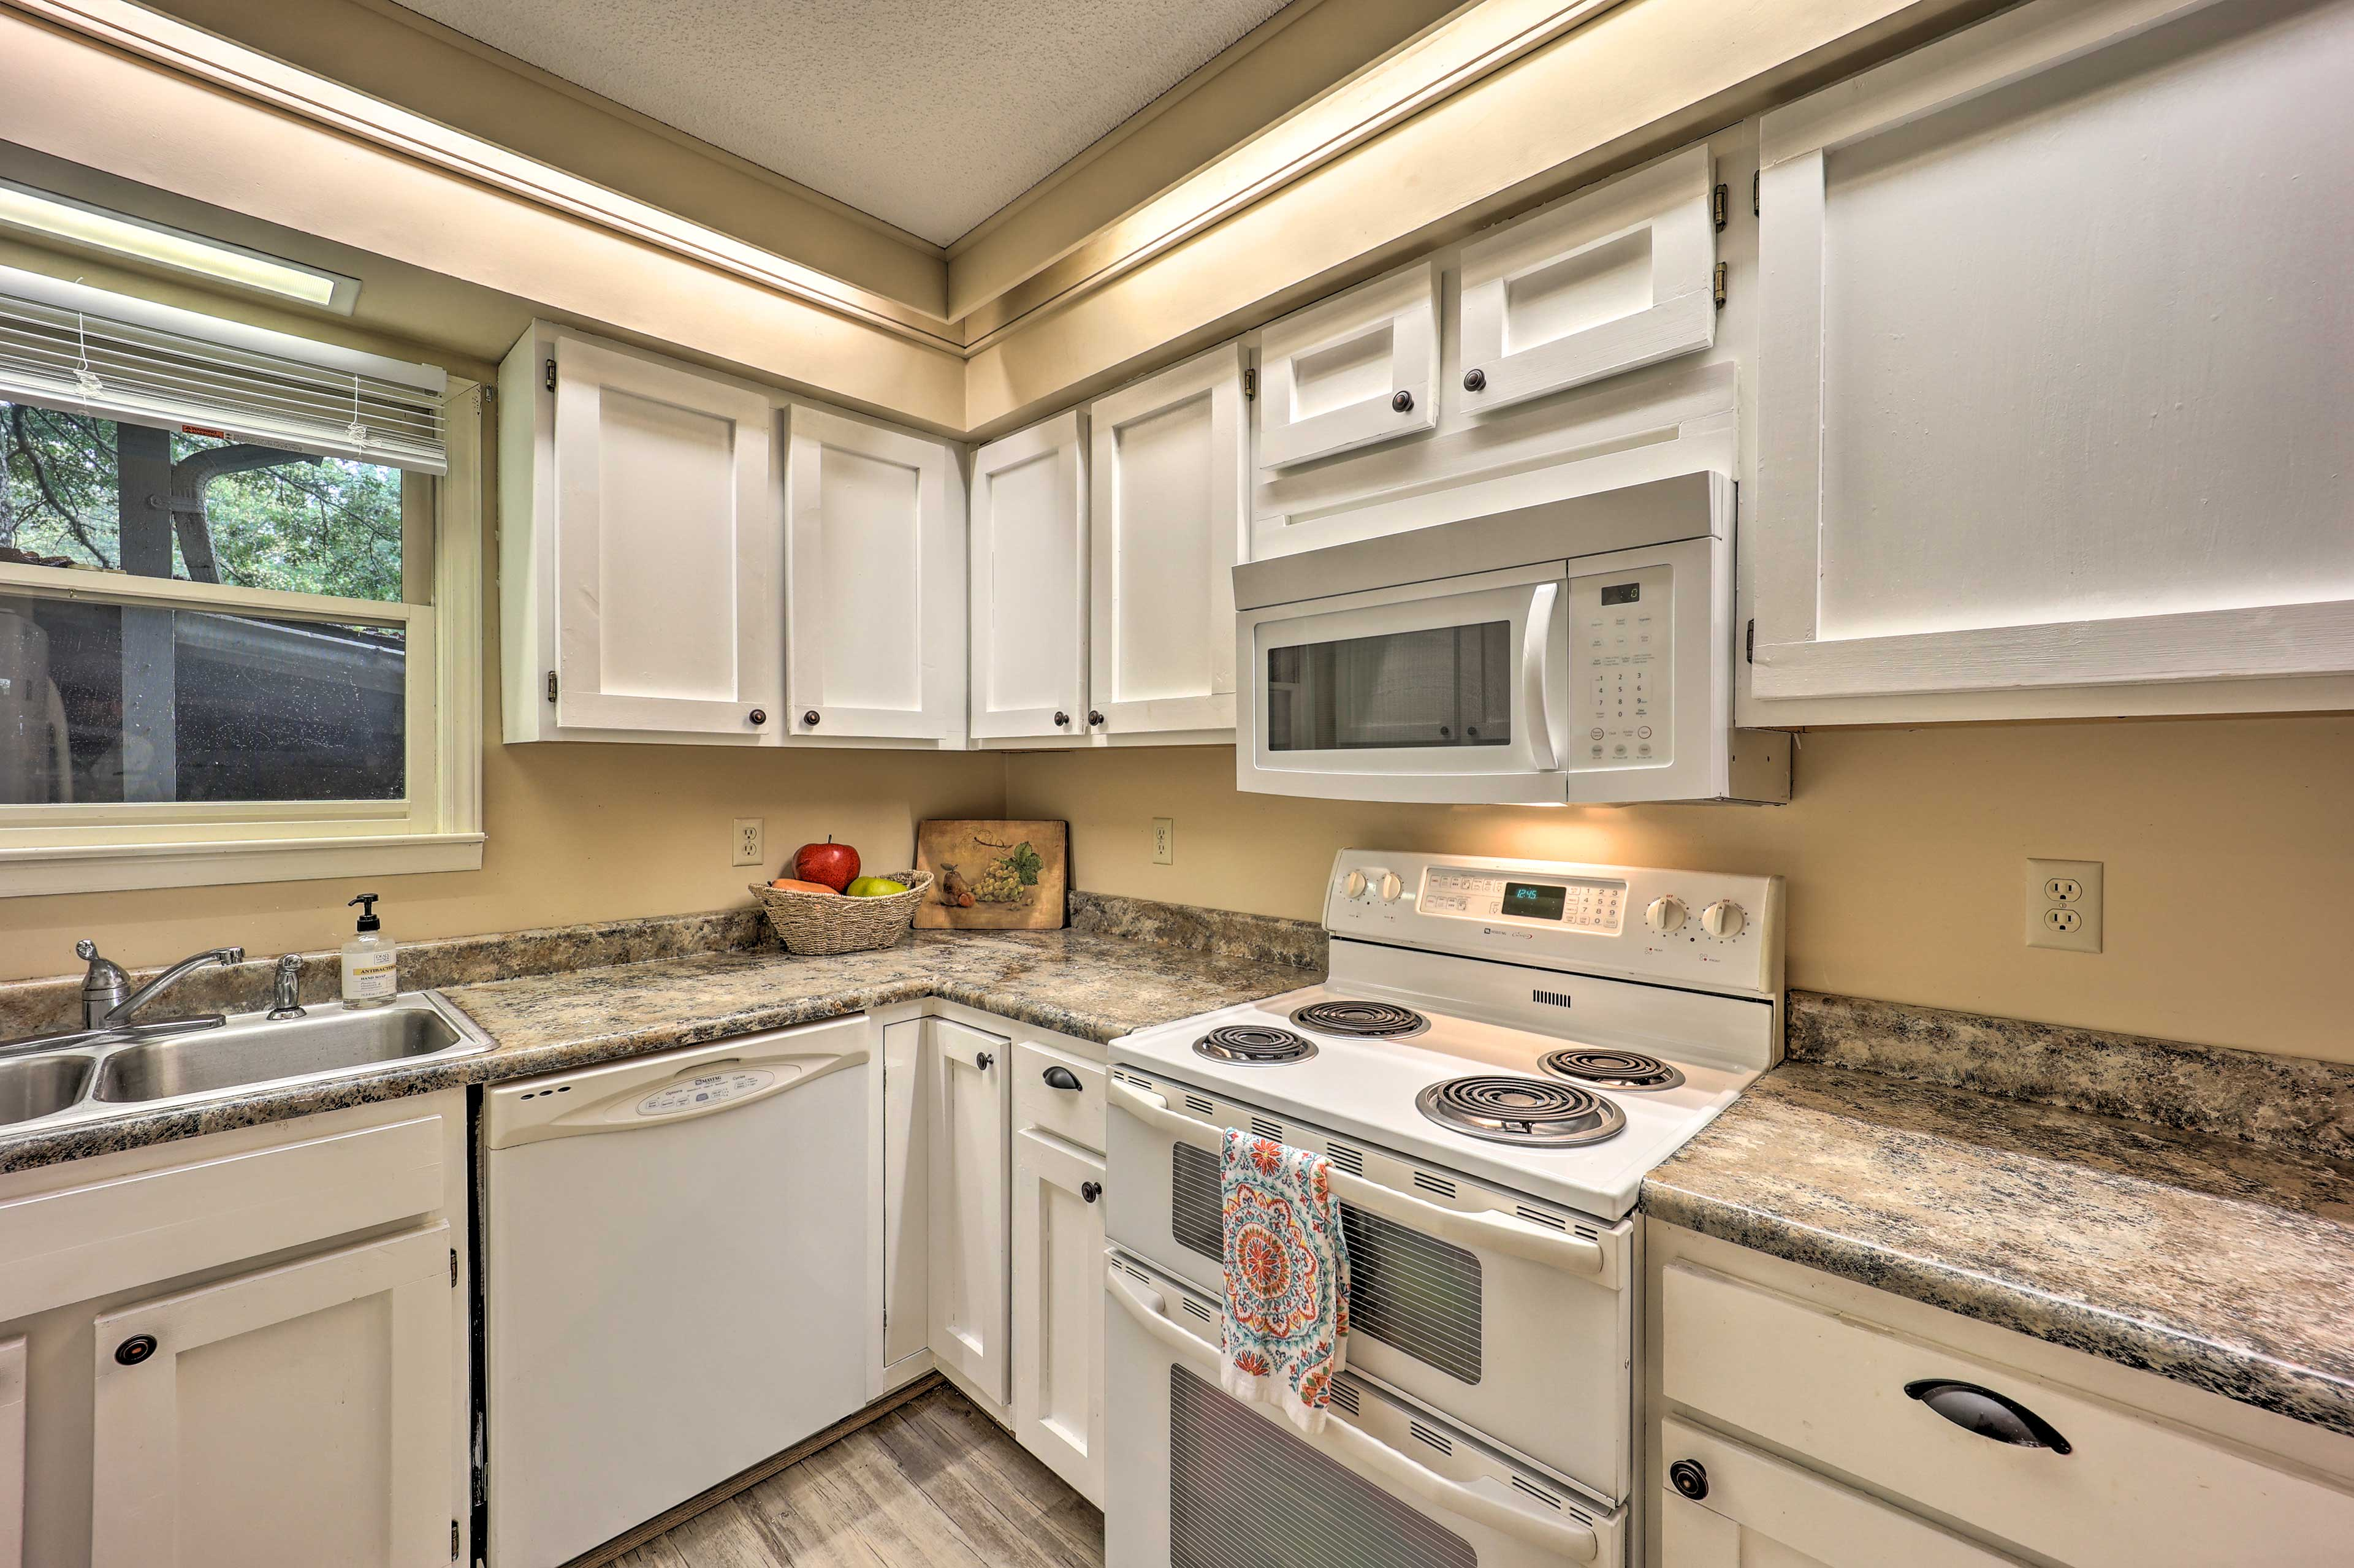 Fully Equipped Kitchen | New Cabinetry